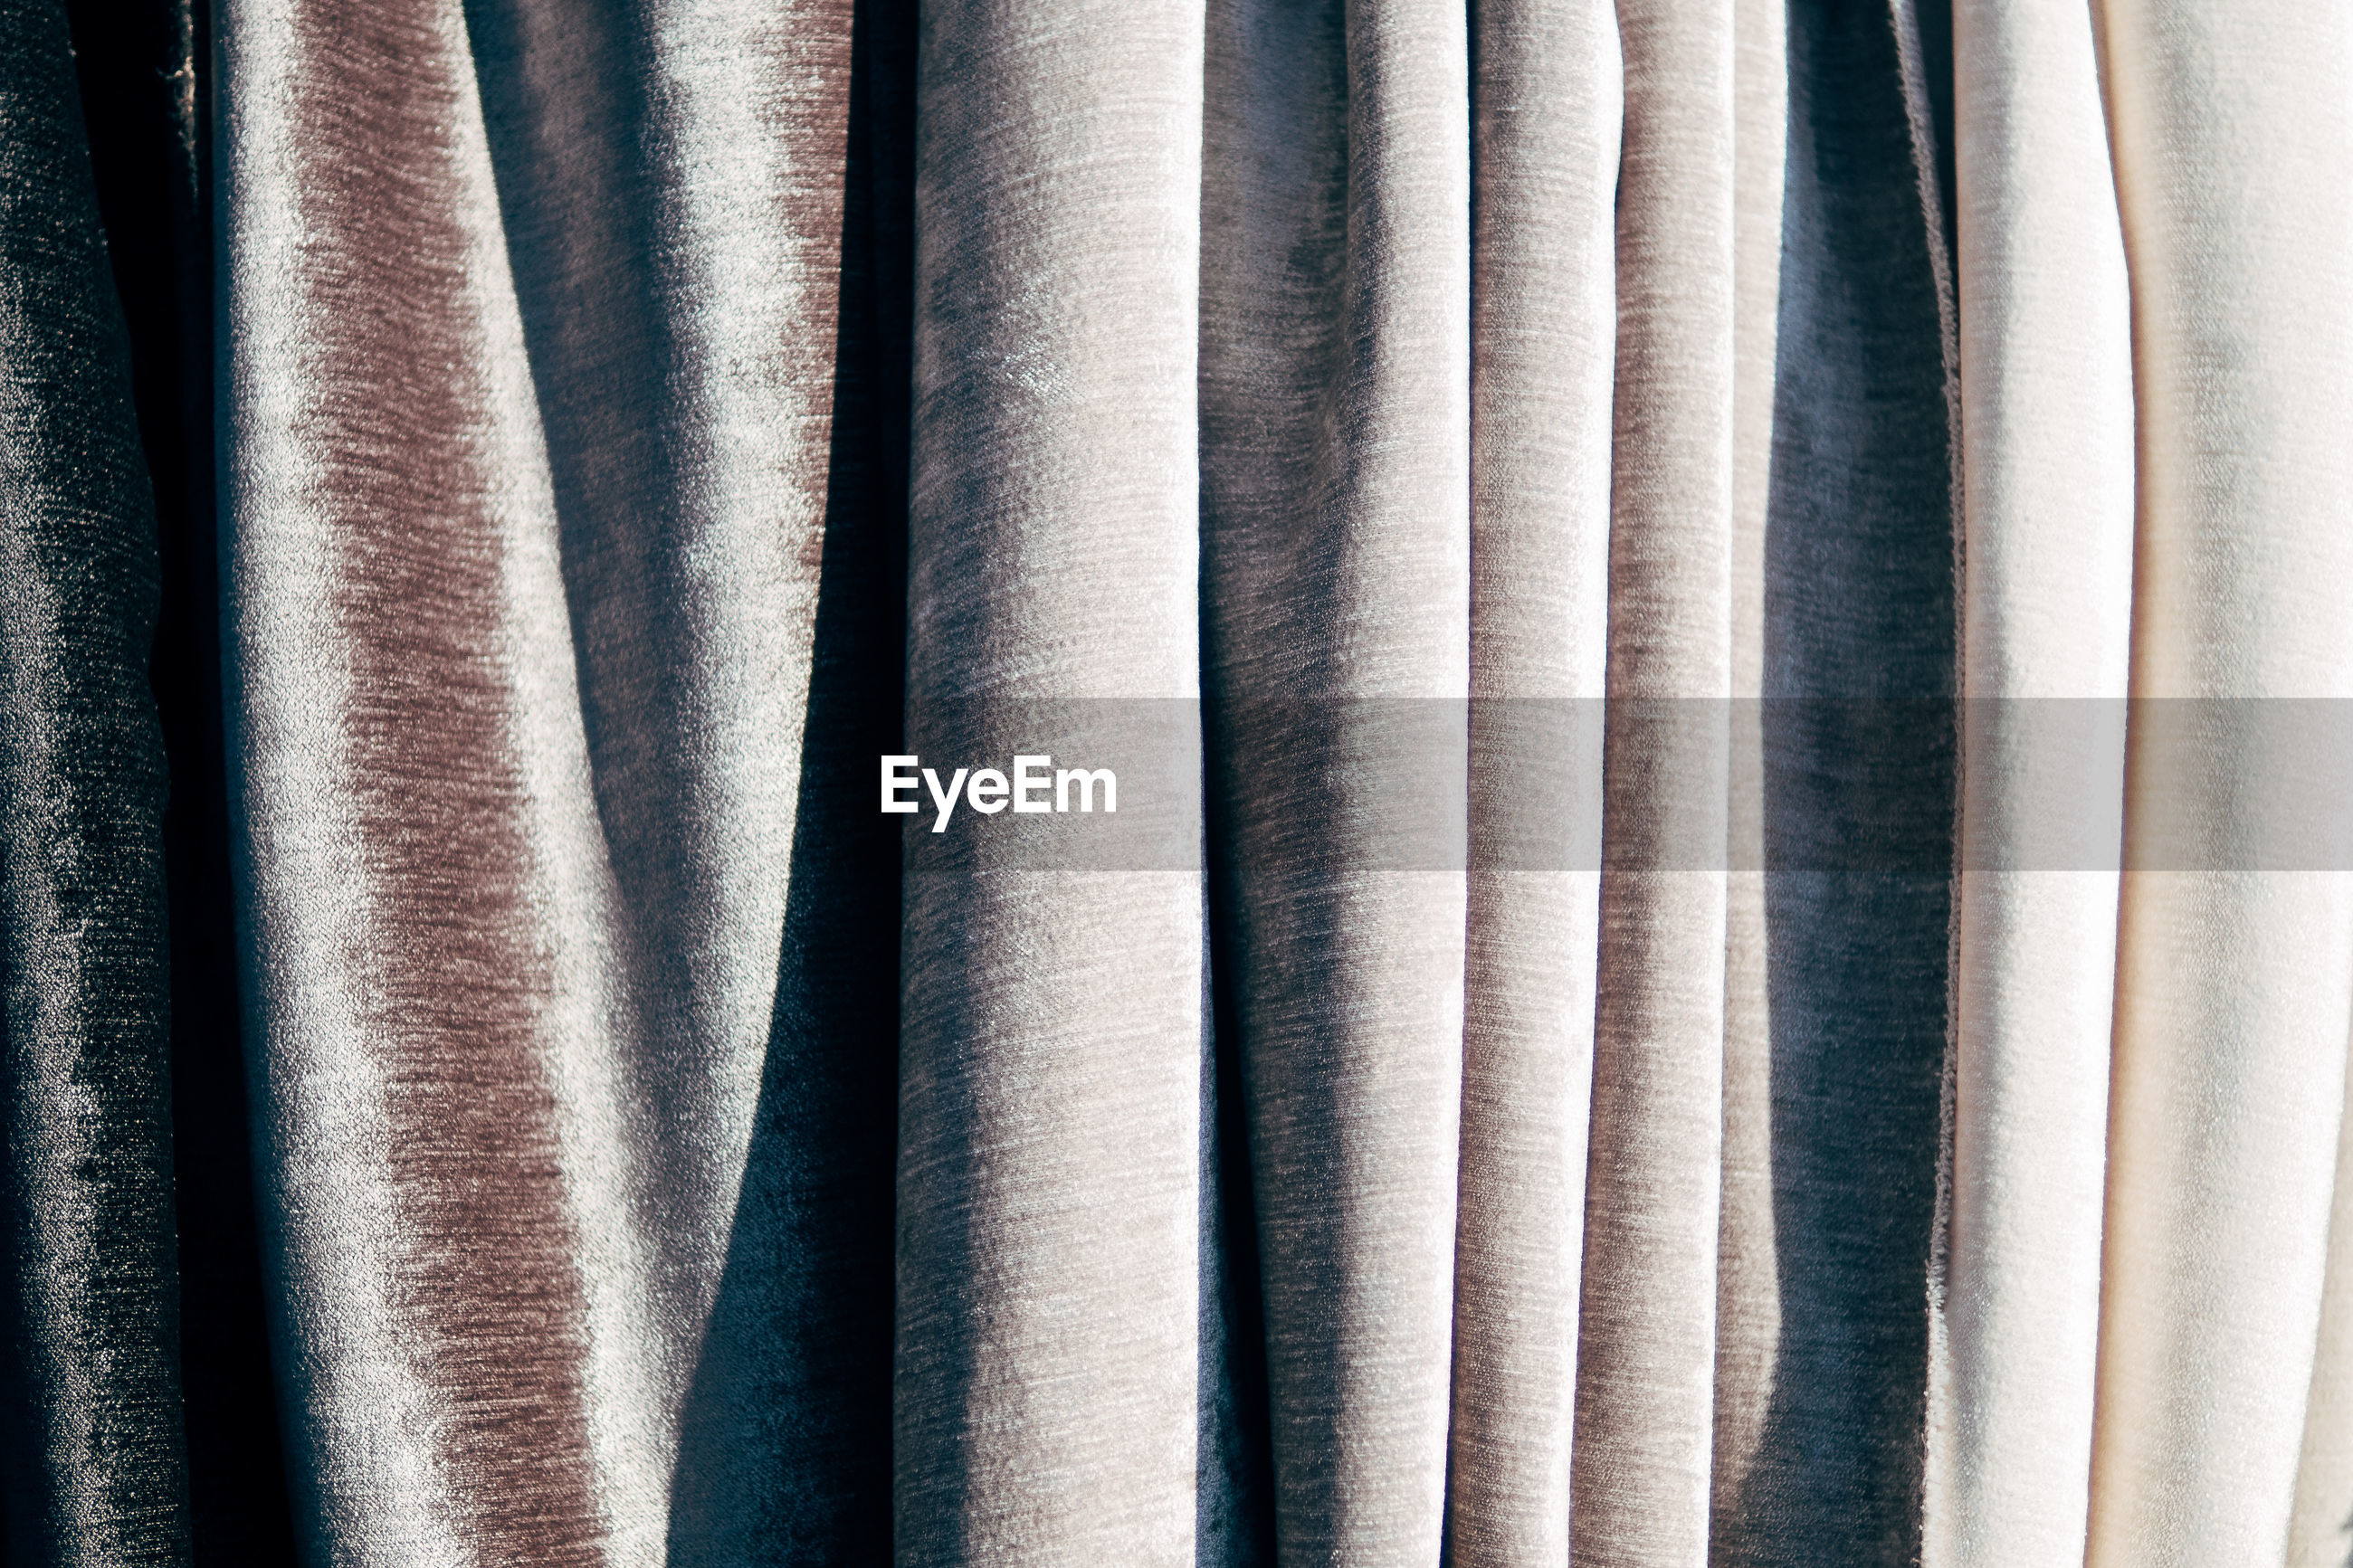 Full frame shot of fabric for sale in store